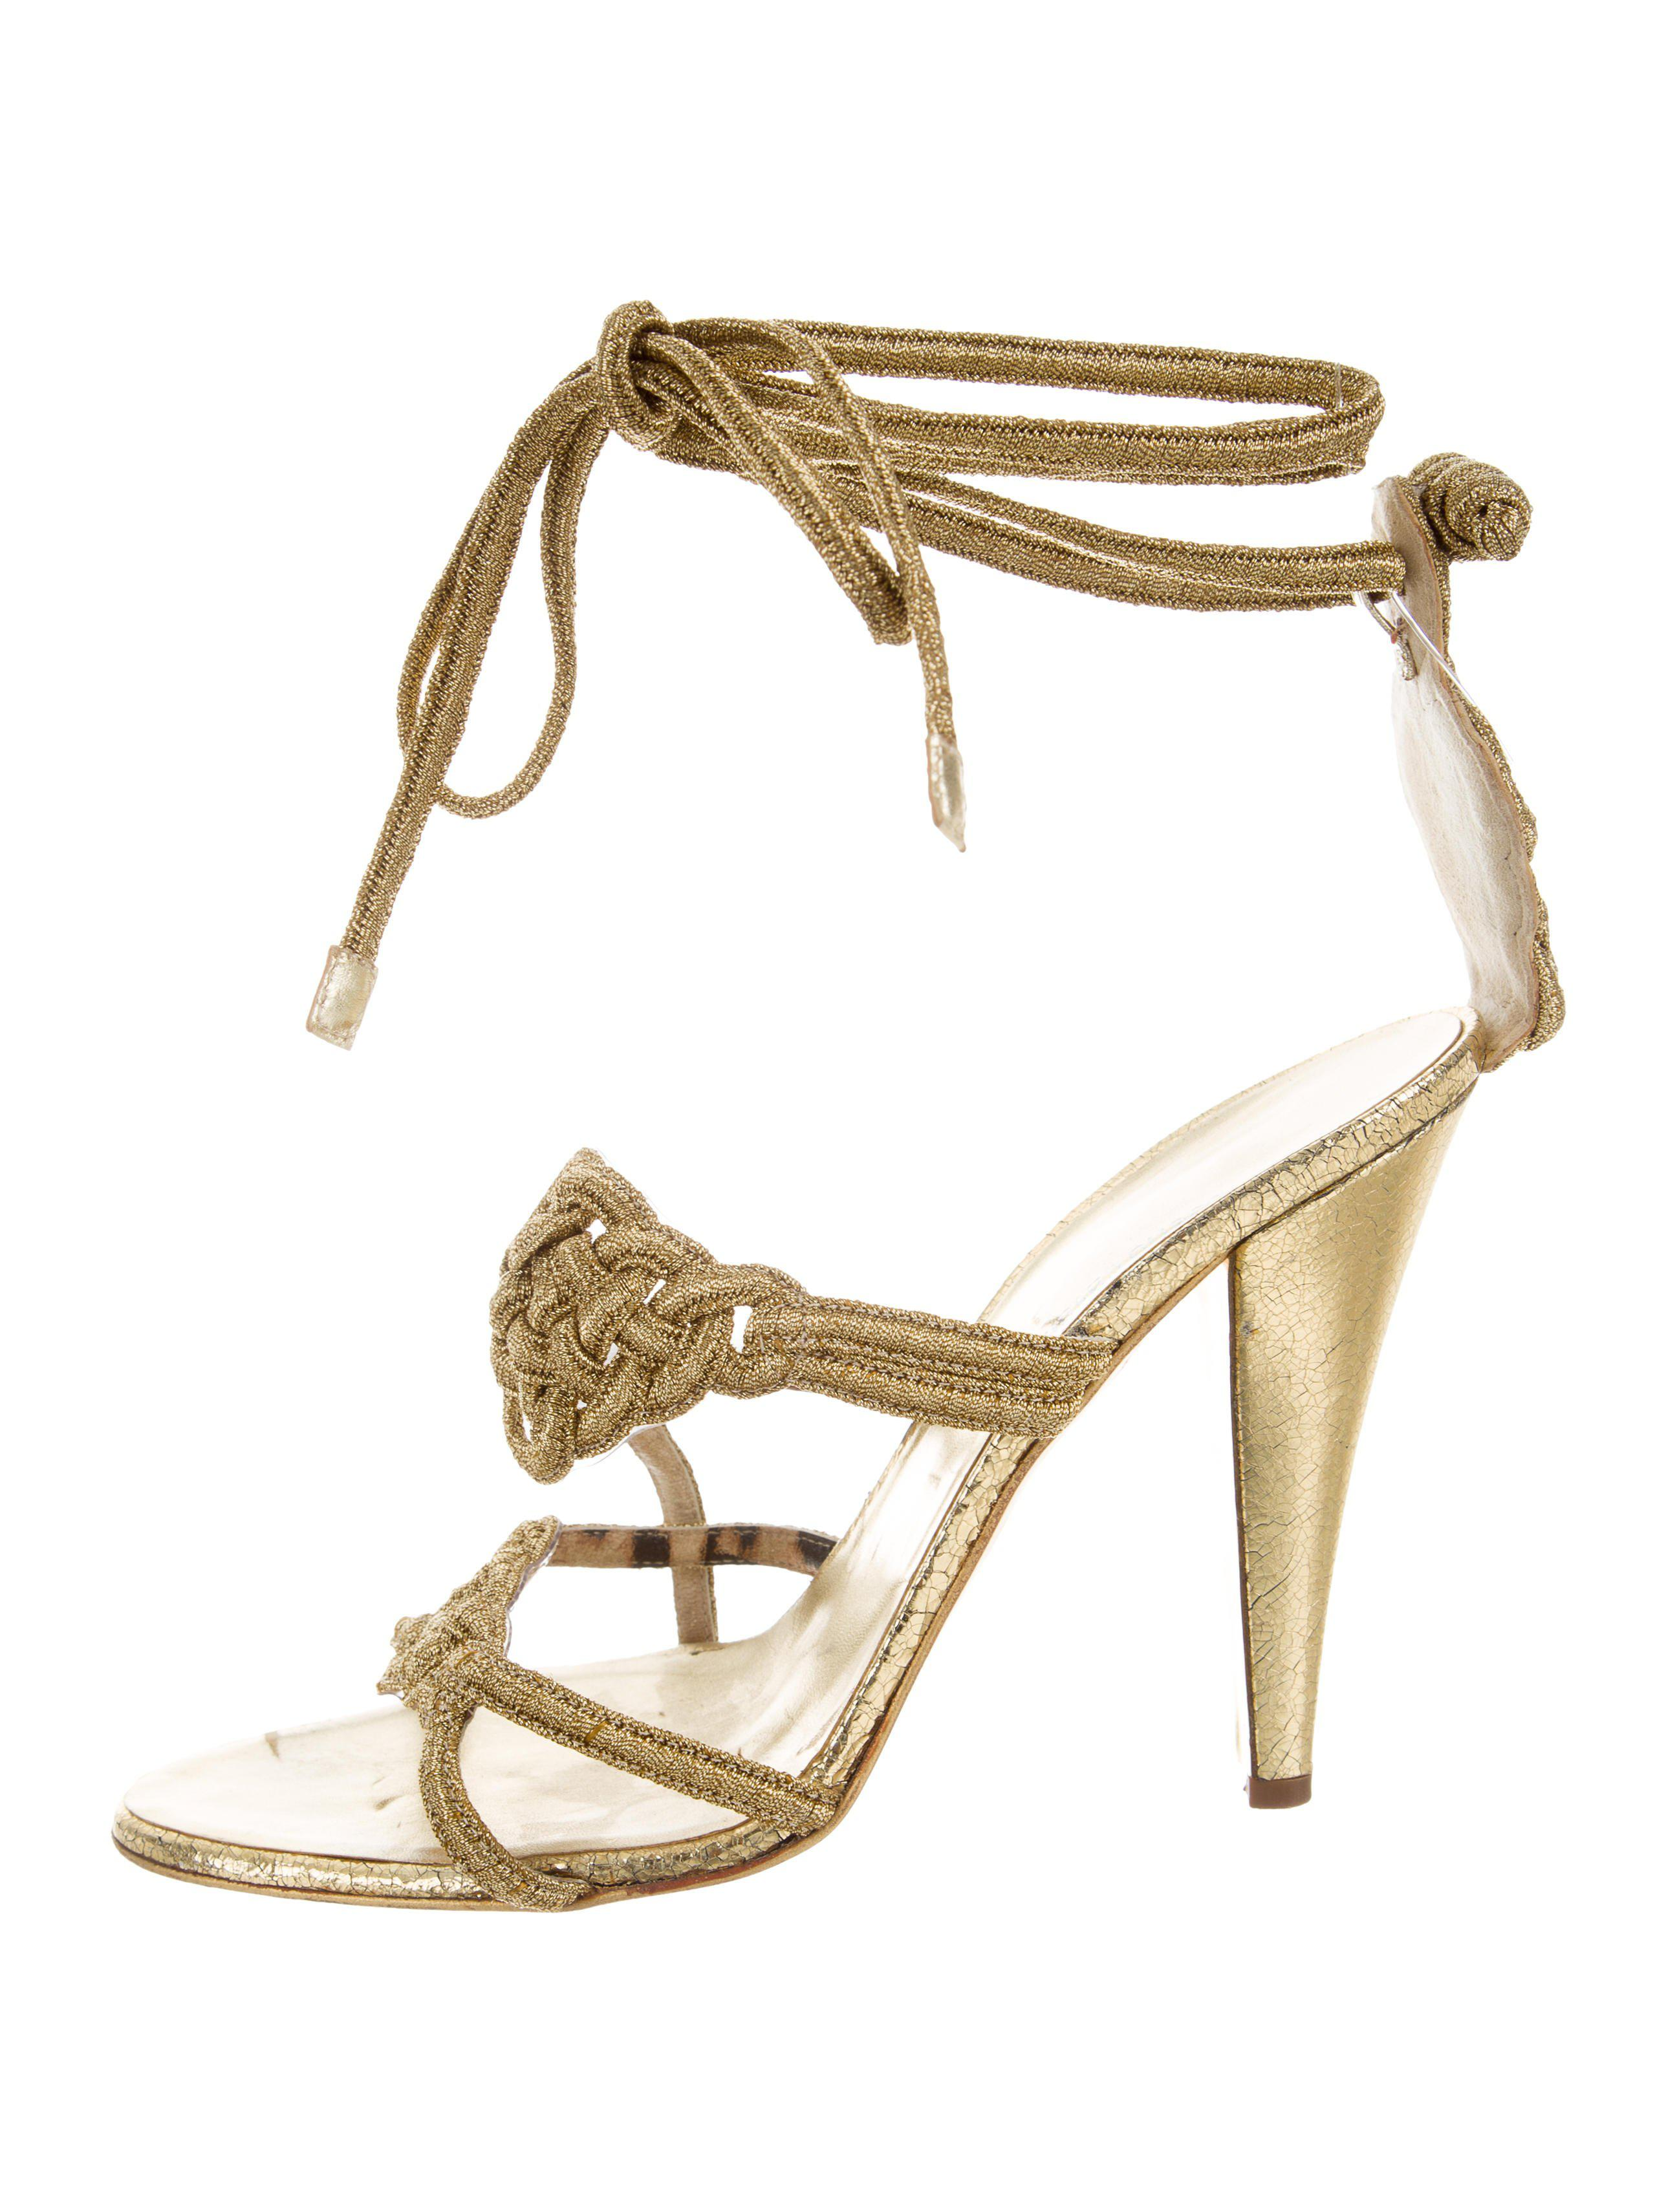 0ce354967c6e Lyst - Roberto Cavalli Woven Lace-up Sandals Gold in Metallic